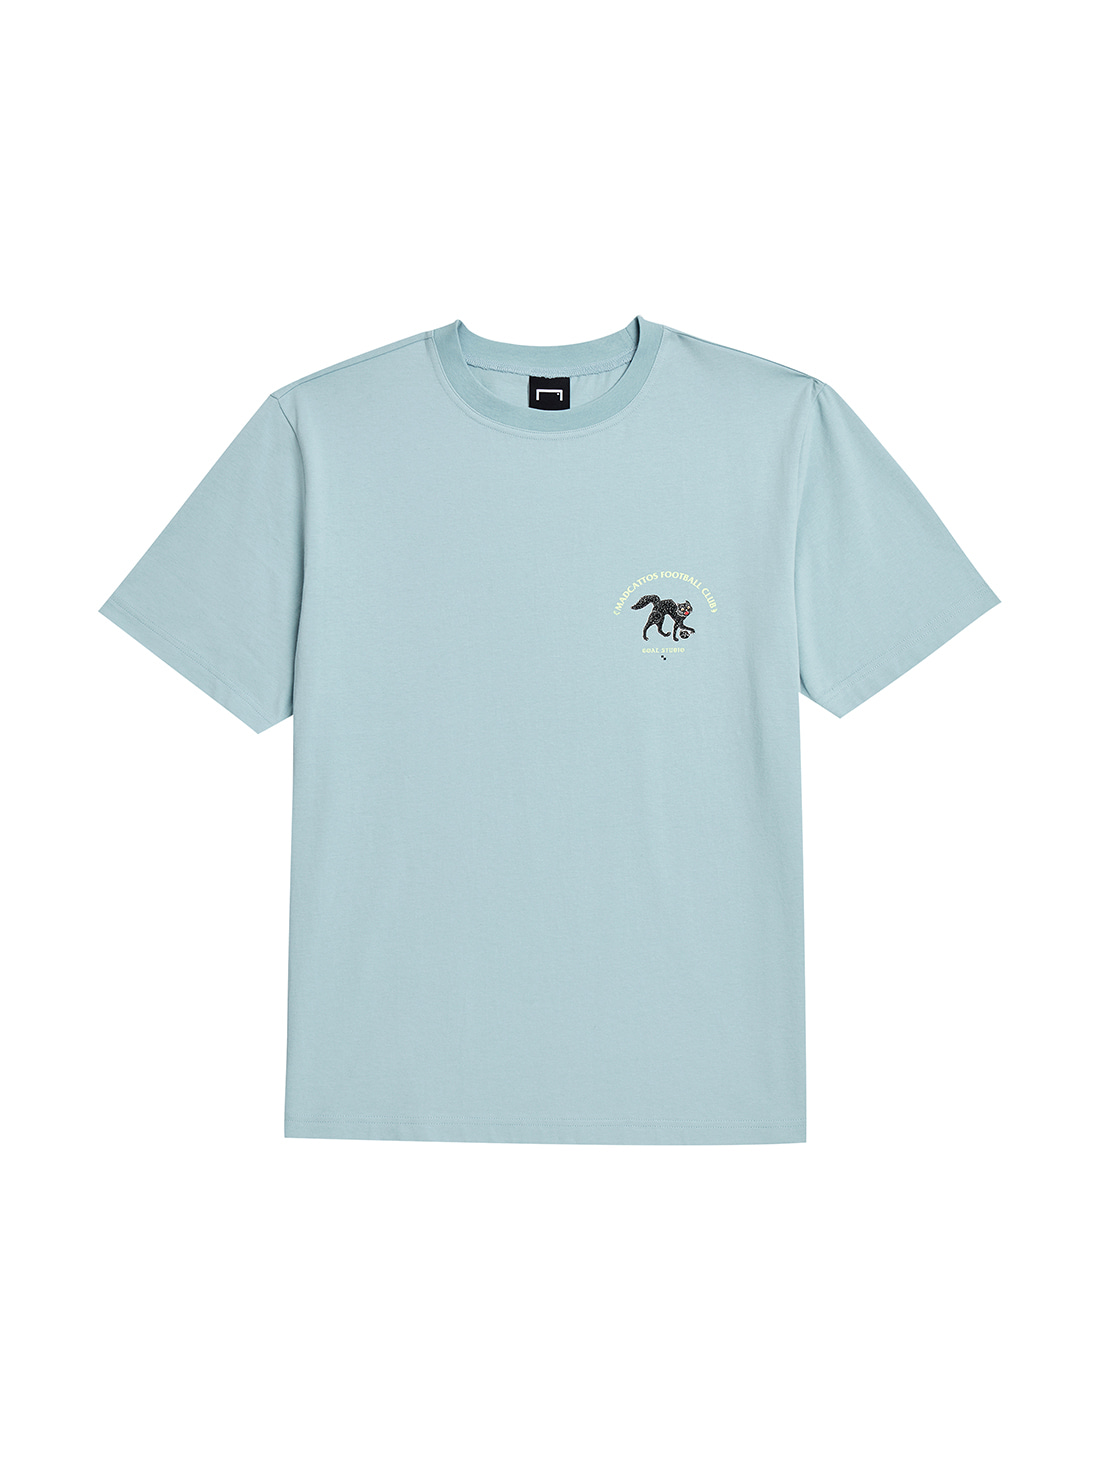 MC SMALL FRONT GRAPHIC TEE - LIGHT BLUE